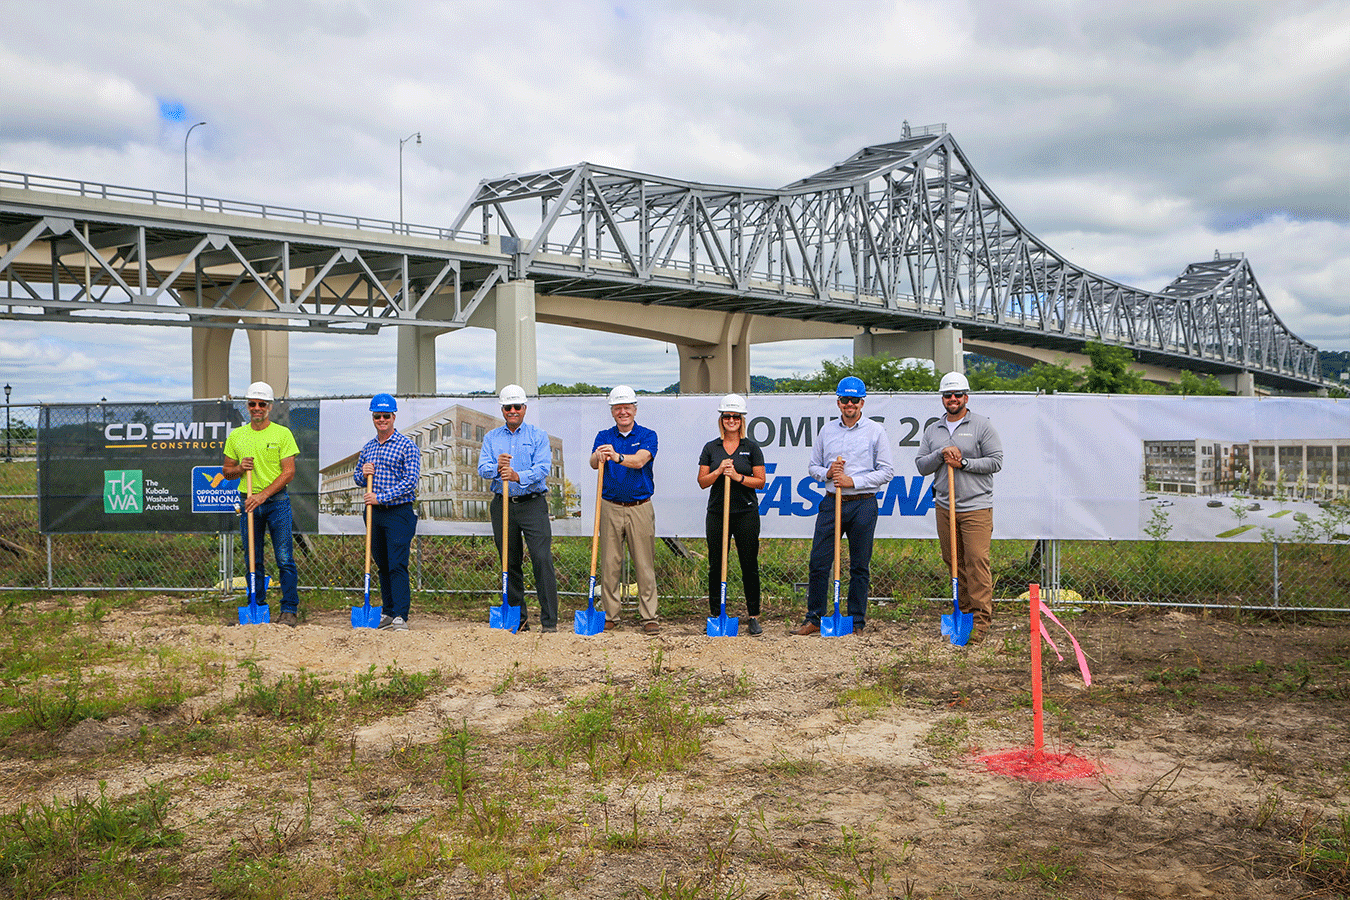 01.2-Fastenal-Groundbreaking-Ceremony-7-22-2020